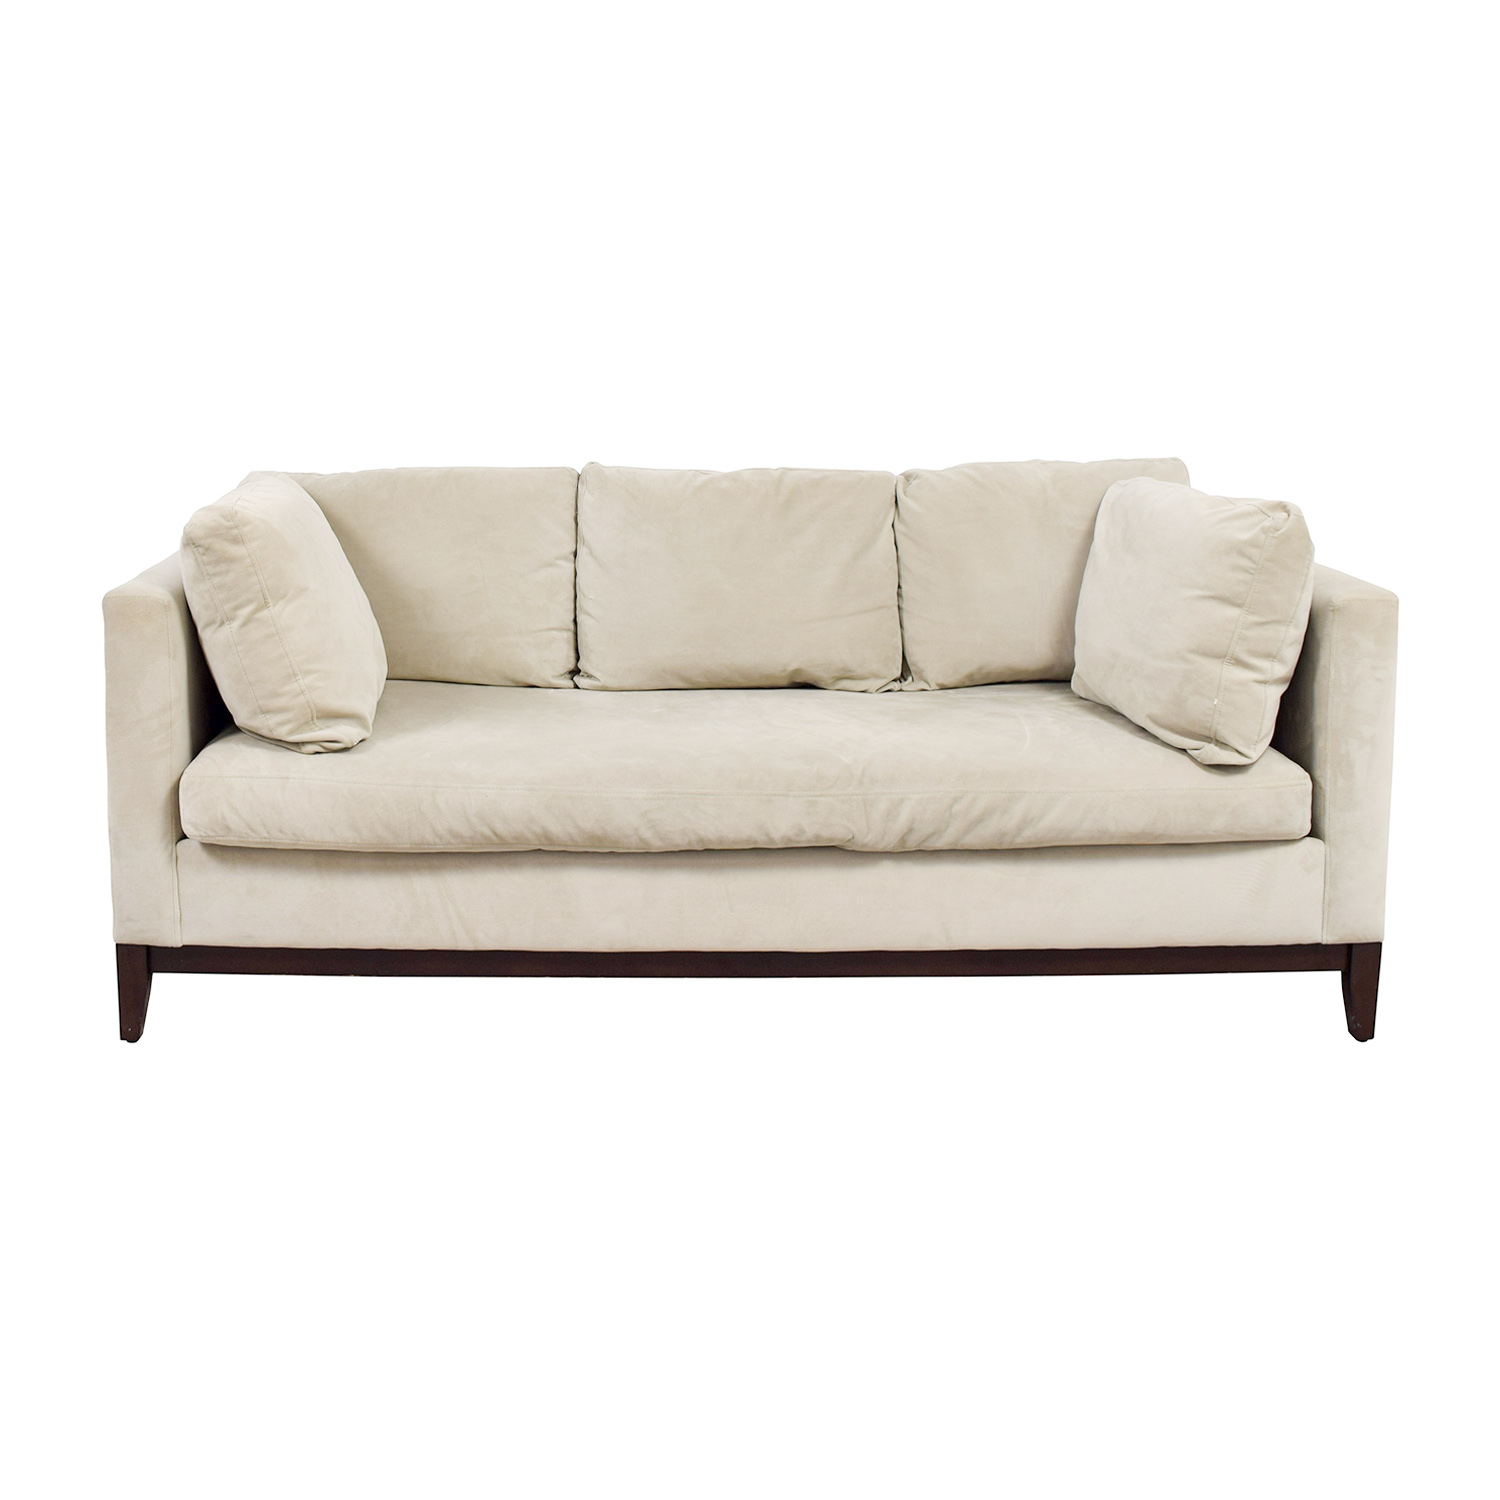 Charmant West Elm West Elm Blake Stone Velvet Single Cushion Sofa Nyc ...